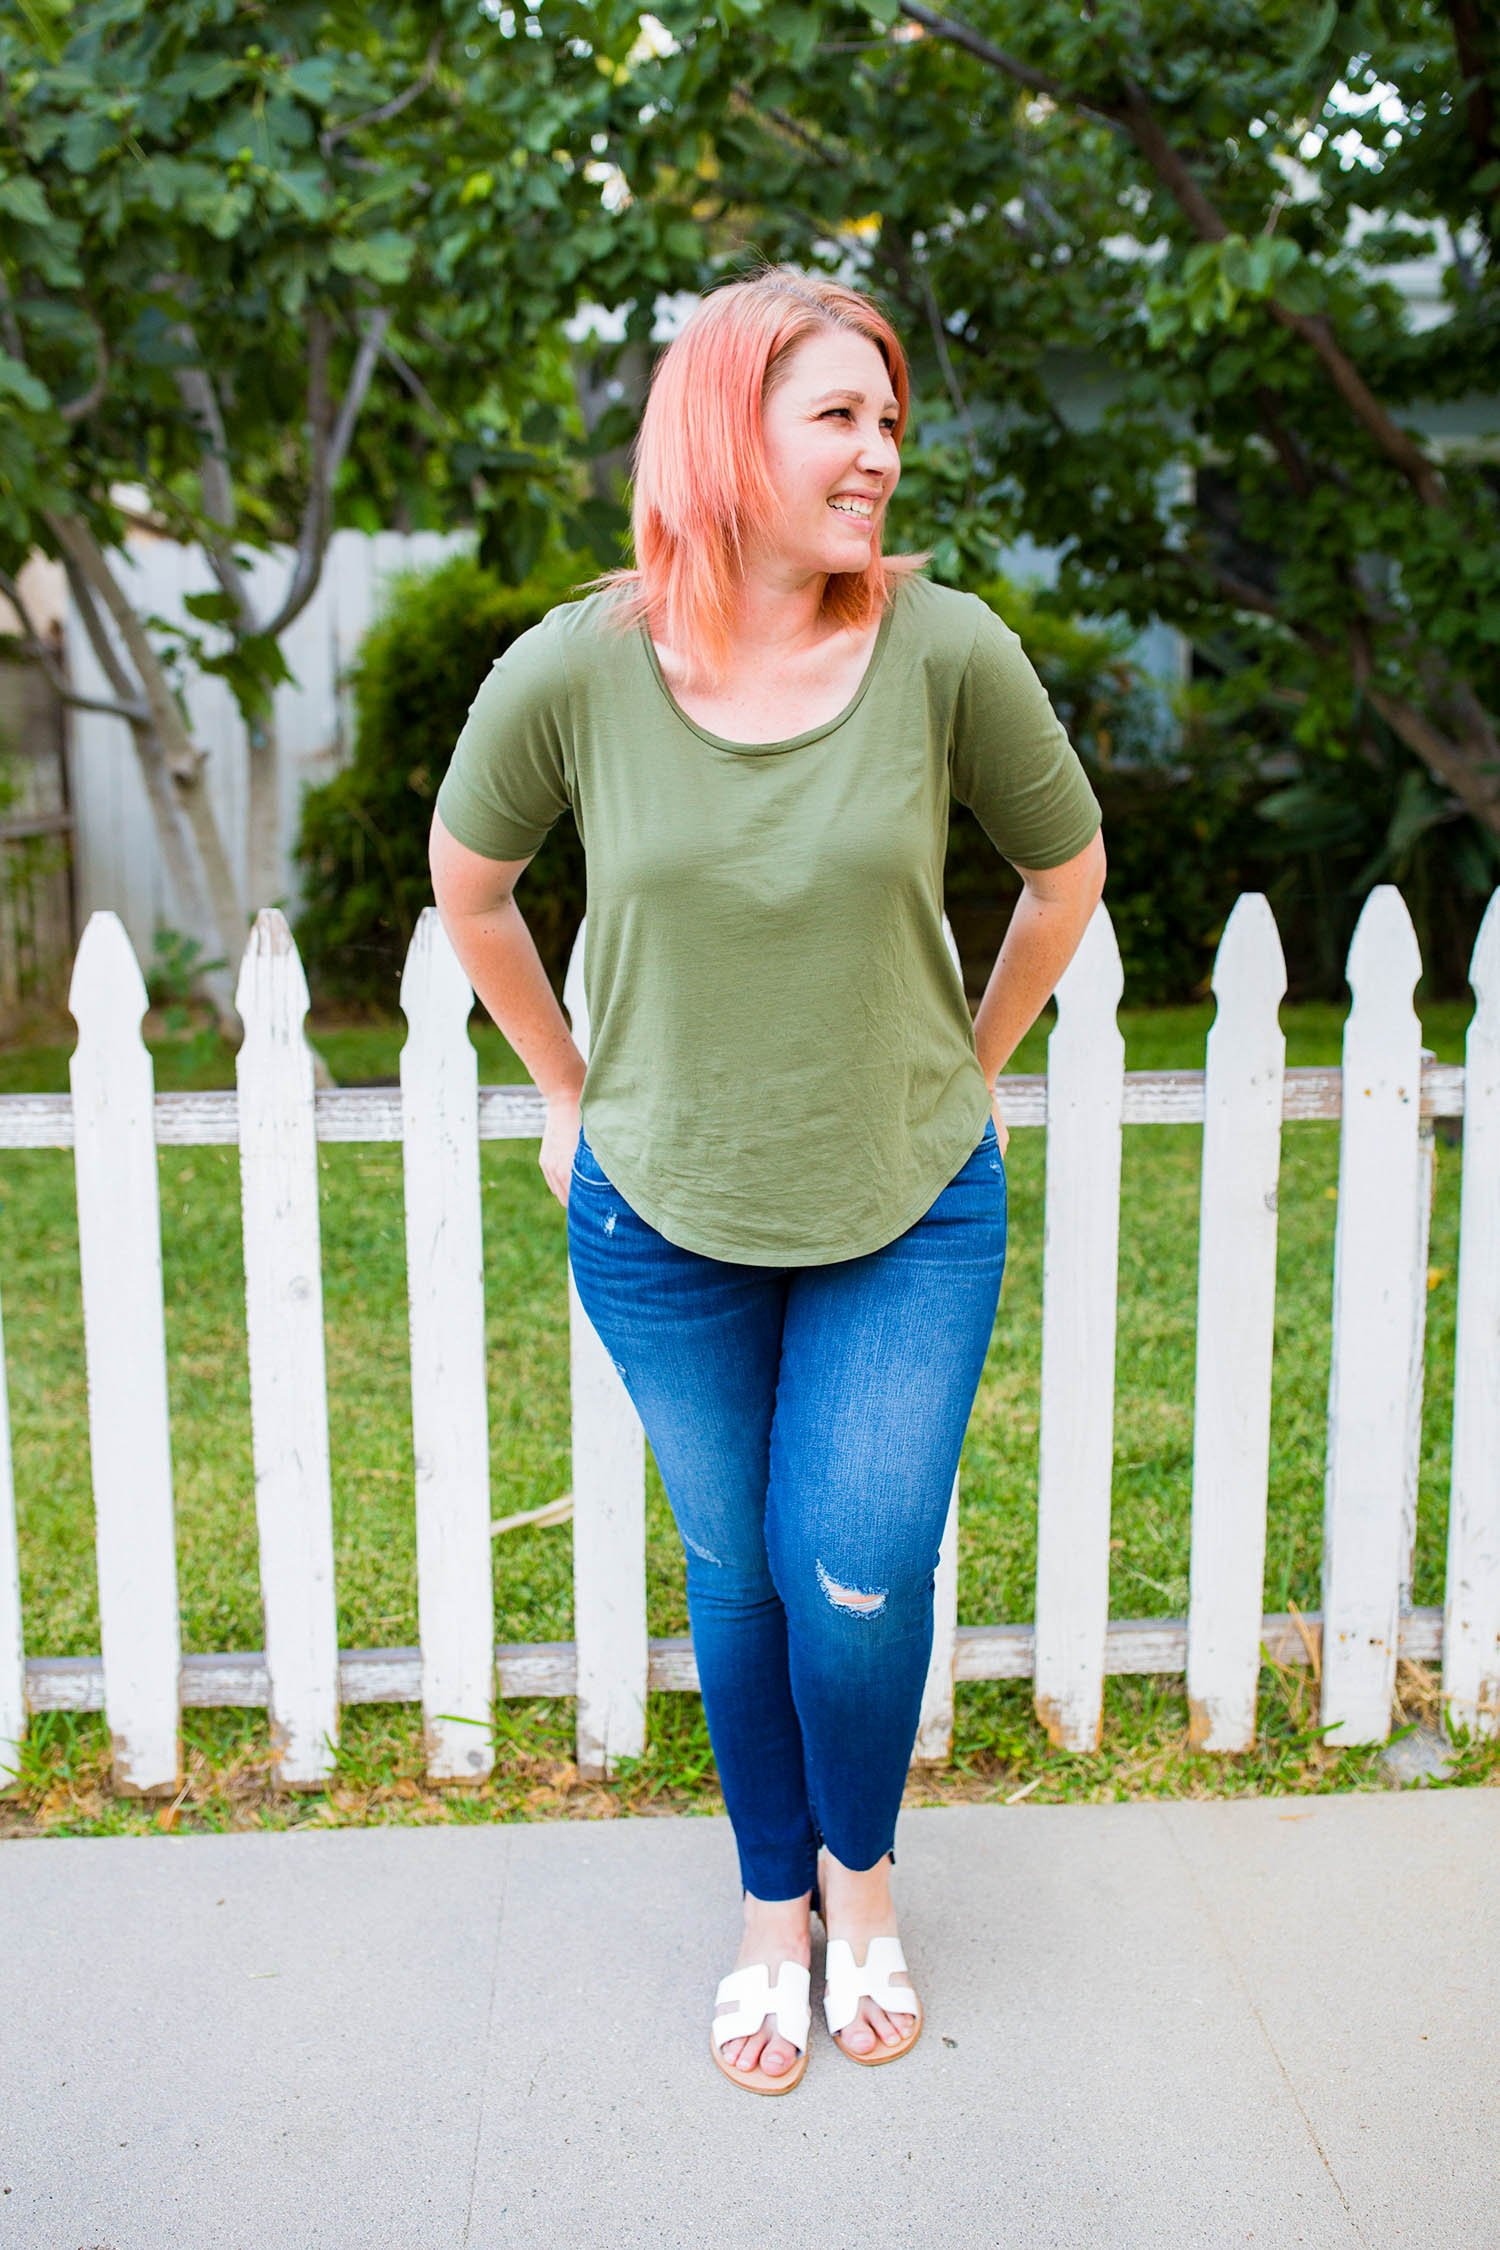 Looking for a great pair of jeans for a pear shaped body? These skinny jeans fit like a dream!